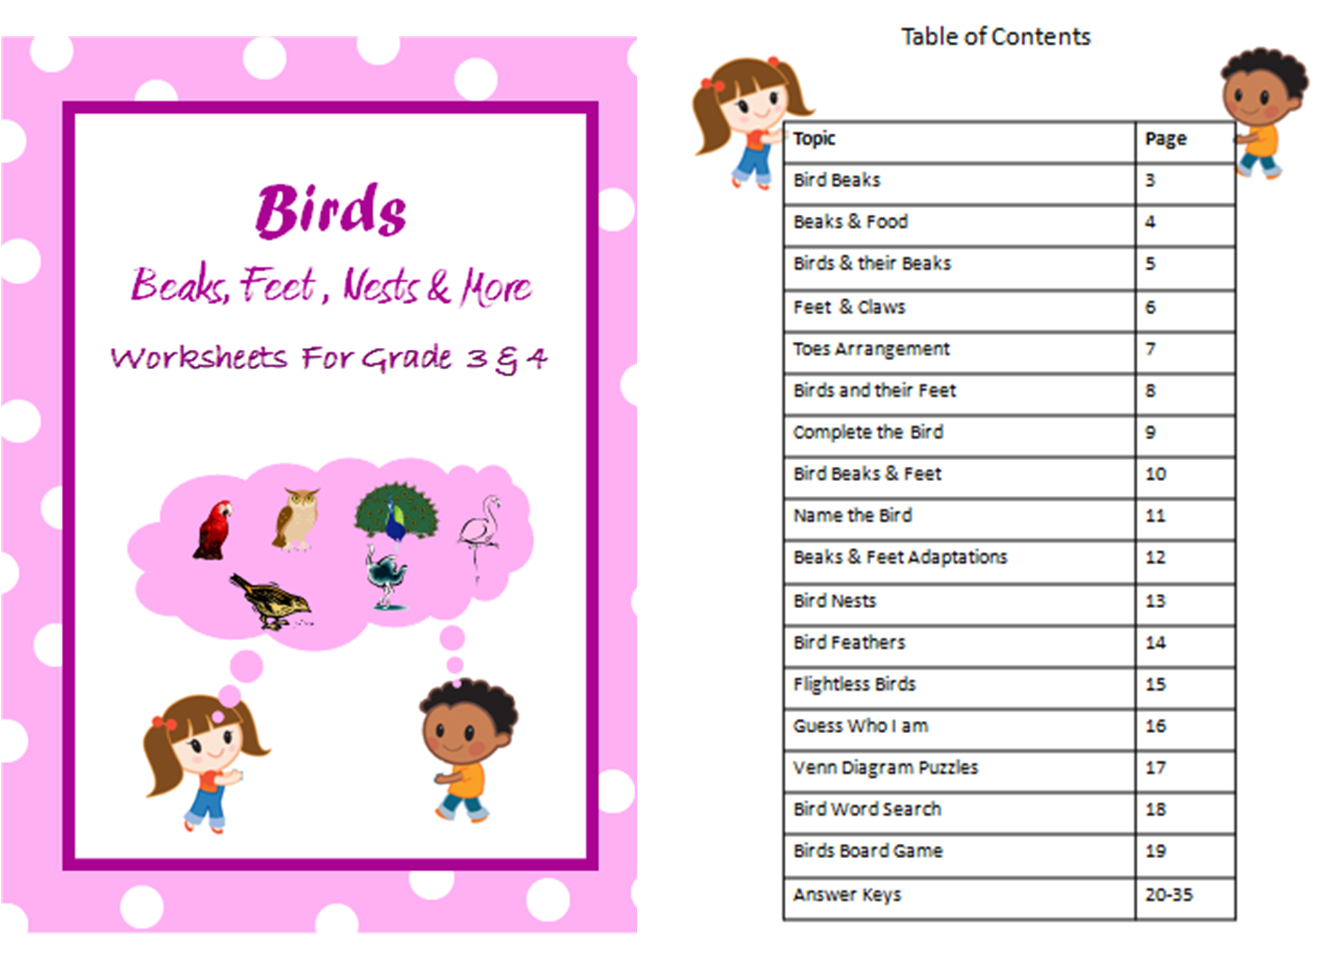 Worksheets On Birds Beaks Feet Nests Feathers